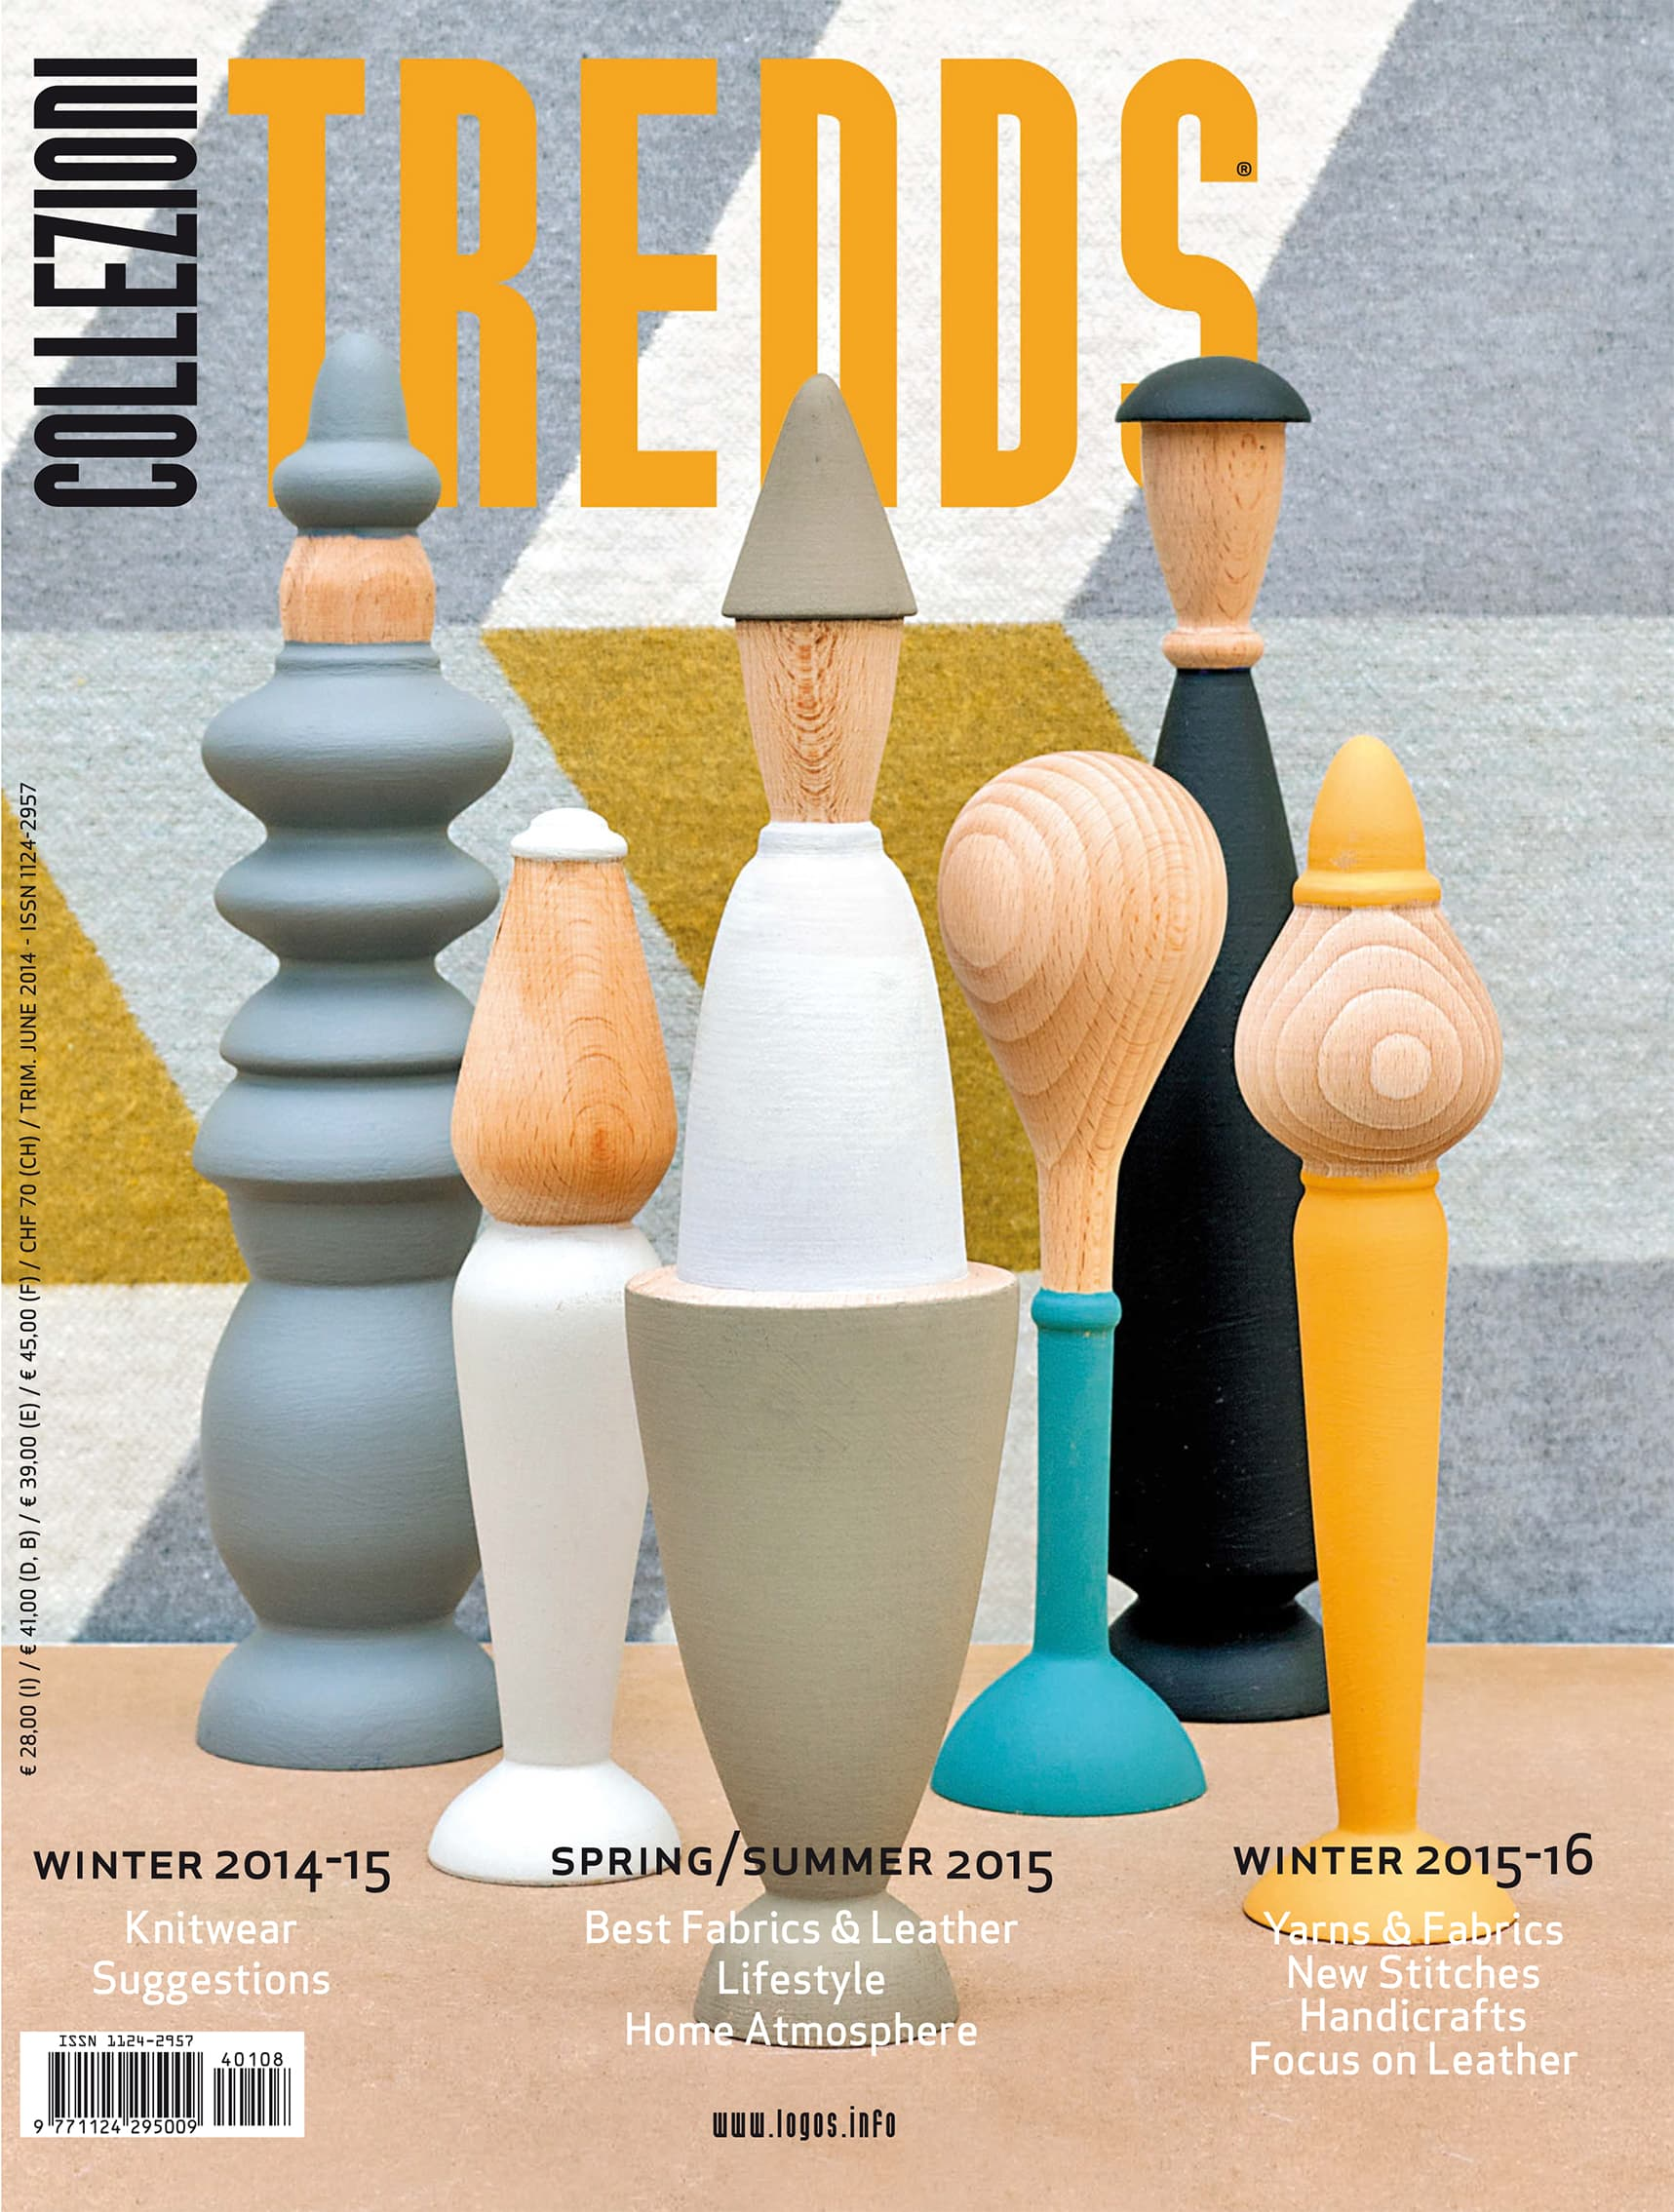 COVER Trends 108